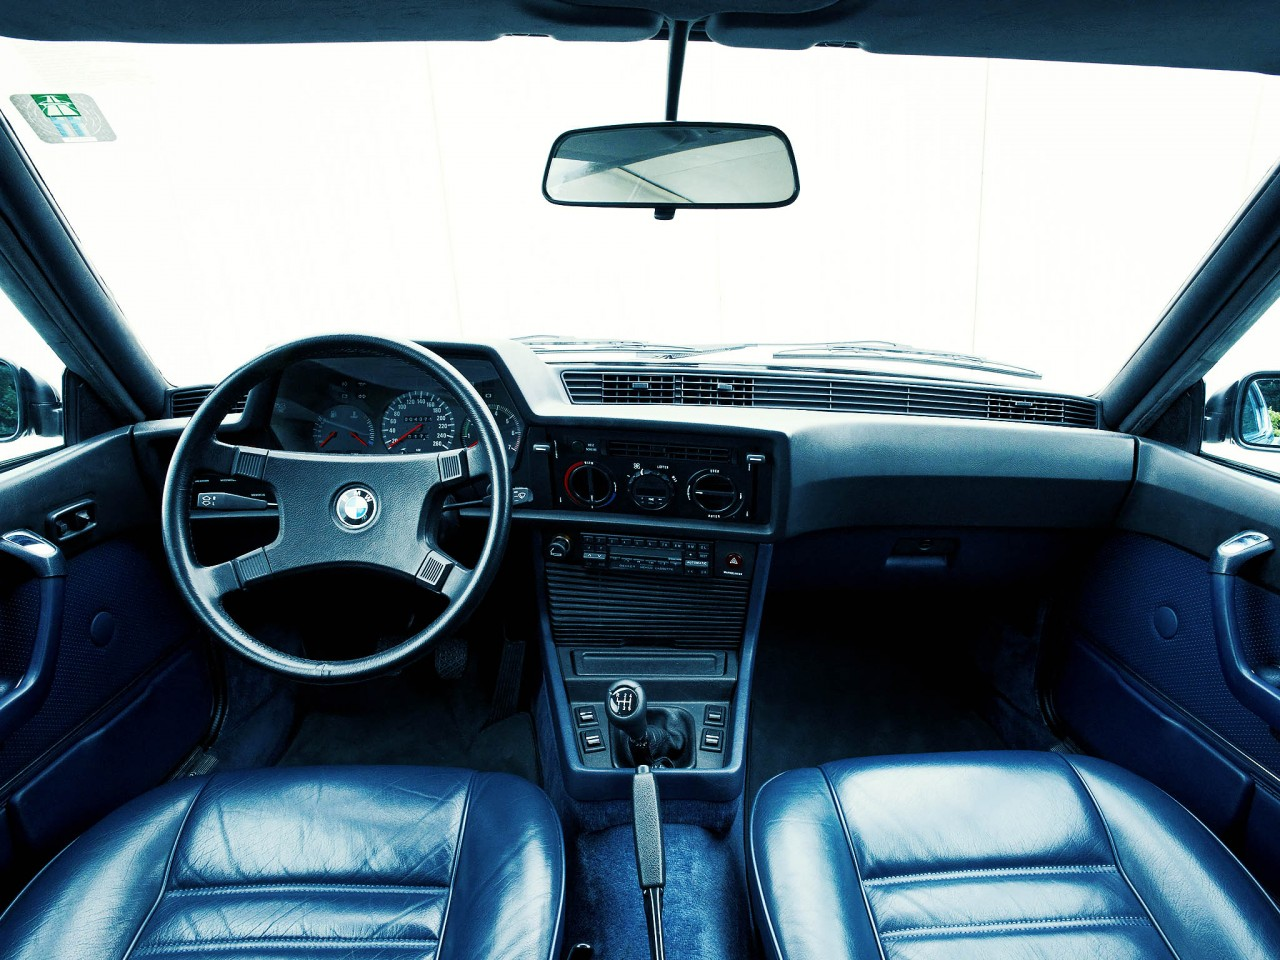 Bmw Wiring Diagrams 87 635 Library 1987 Diagram Full Buying Guide E24 635csi Engine Body Electric Drive My Really